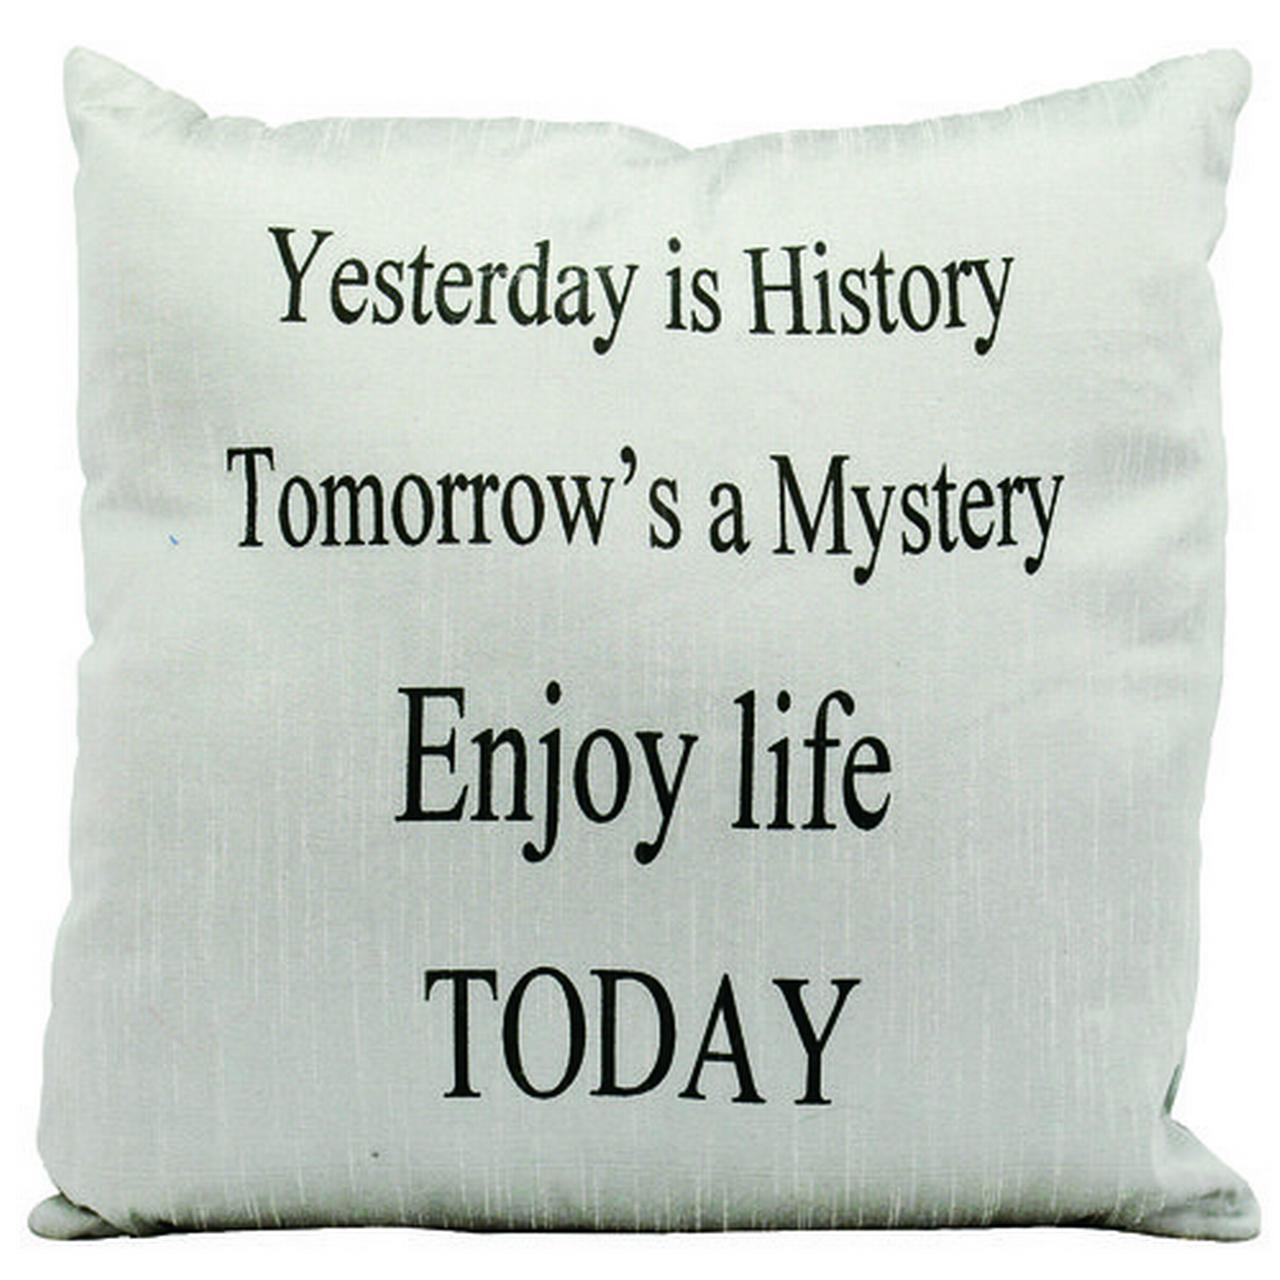 """Nourison Life Styles 'Yesterday is History' Throw Pillow, Silver, 18"""" x 18"""""""